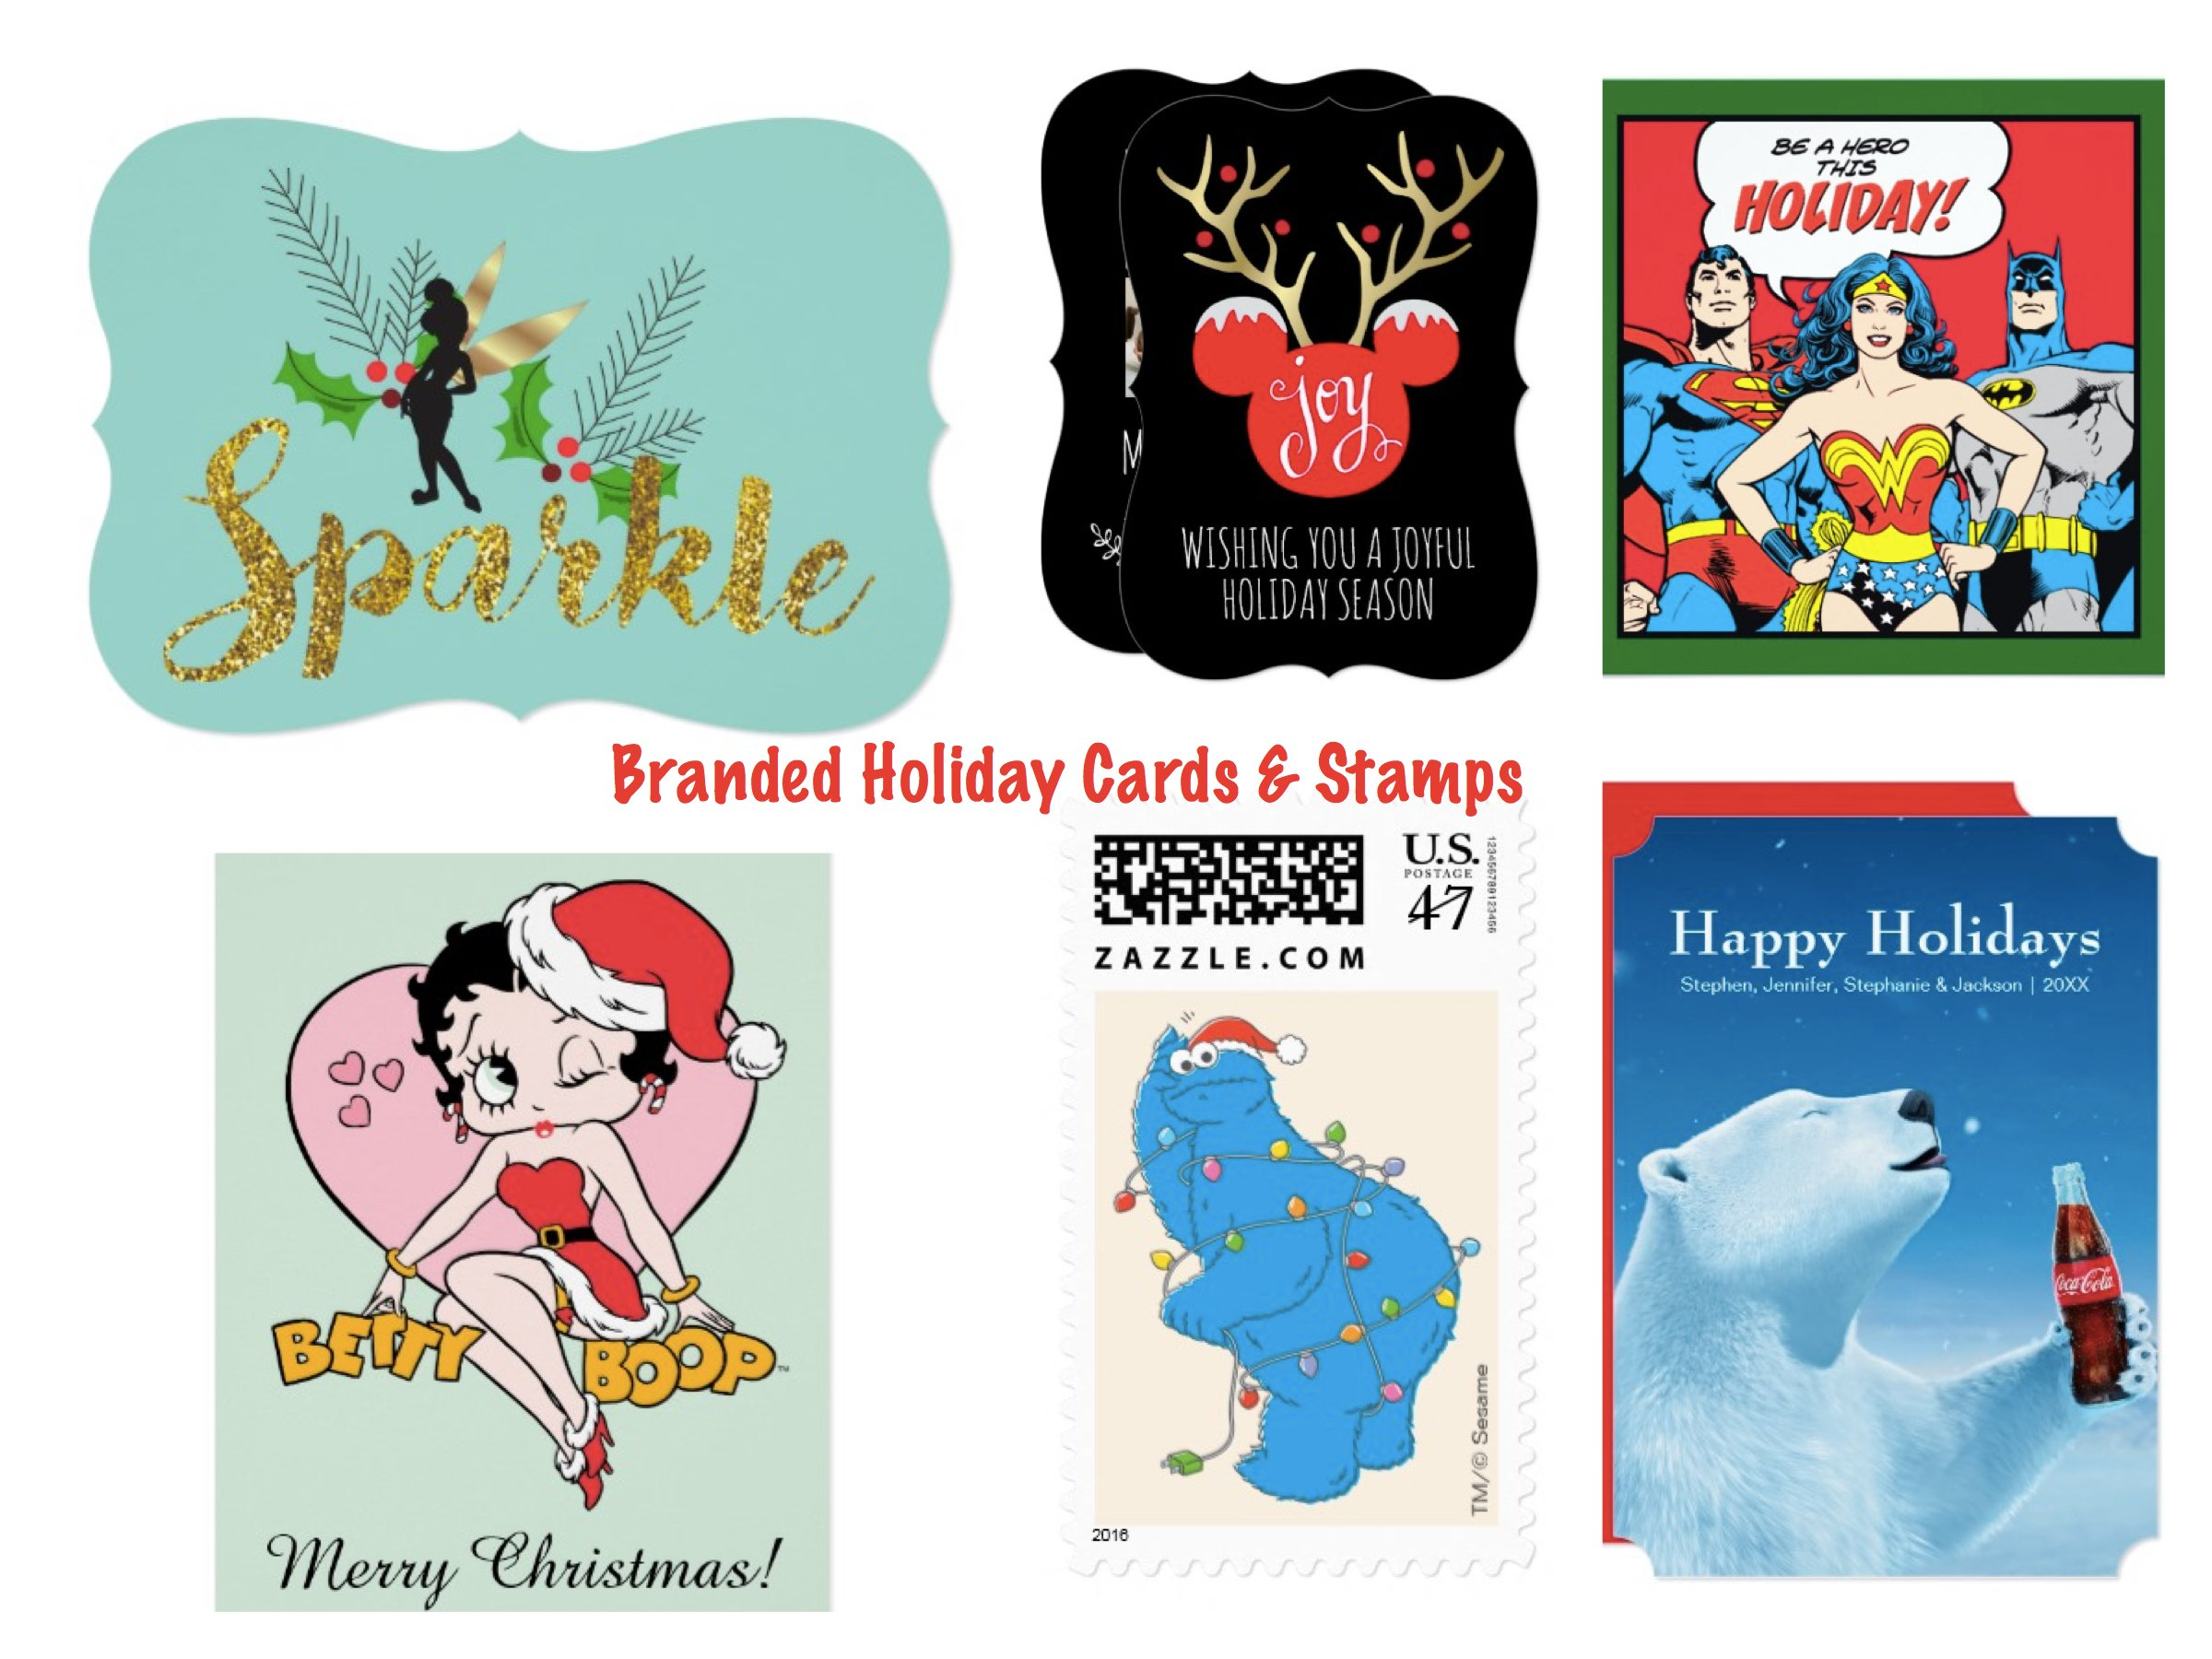 Branded Holiday Cards and Stamps